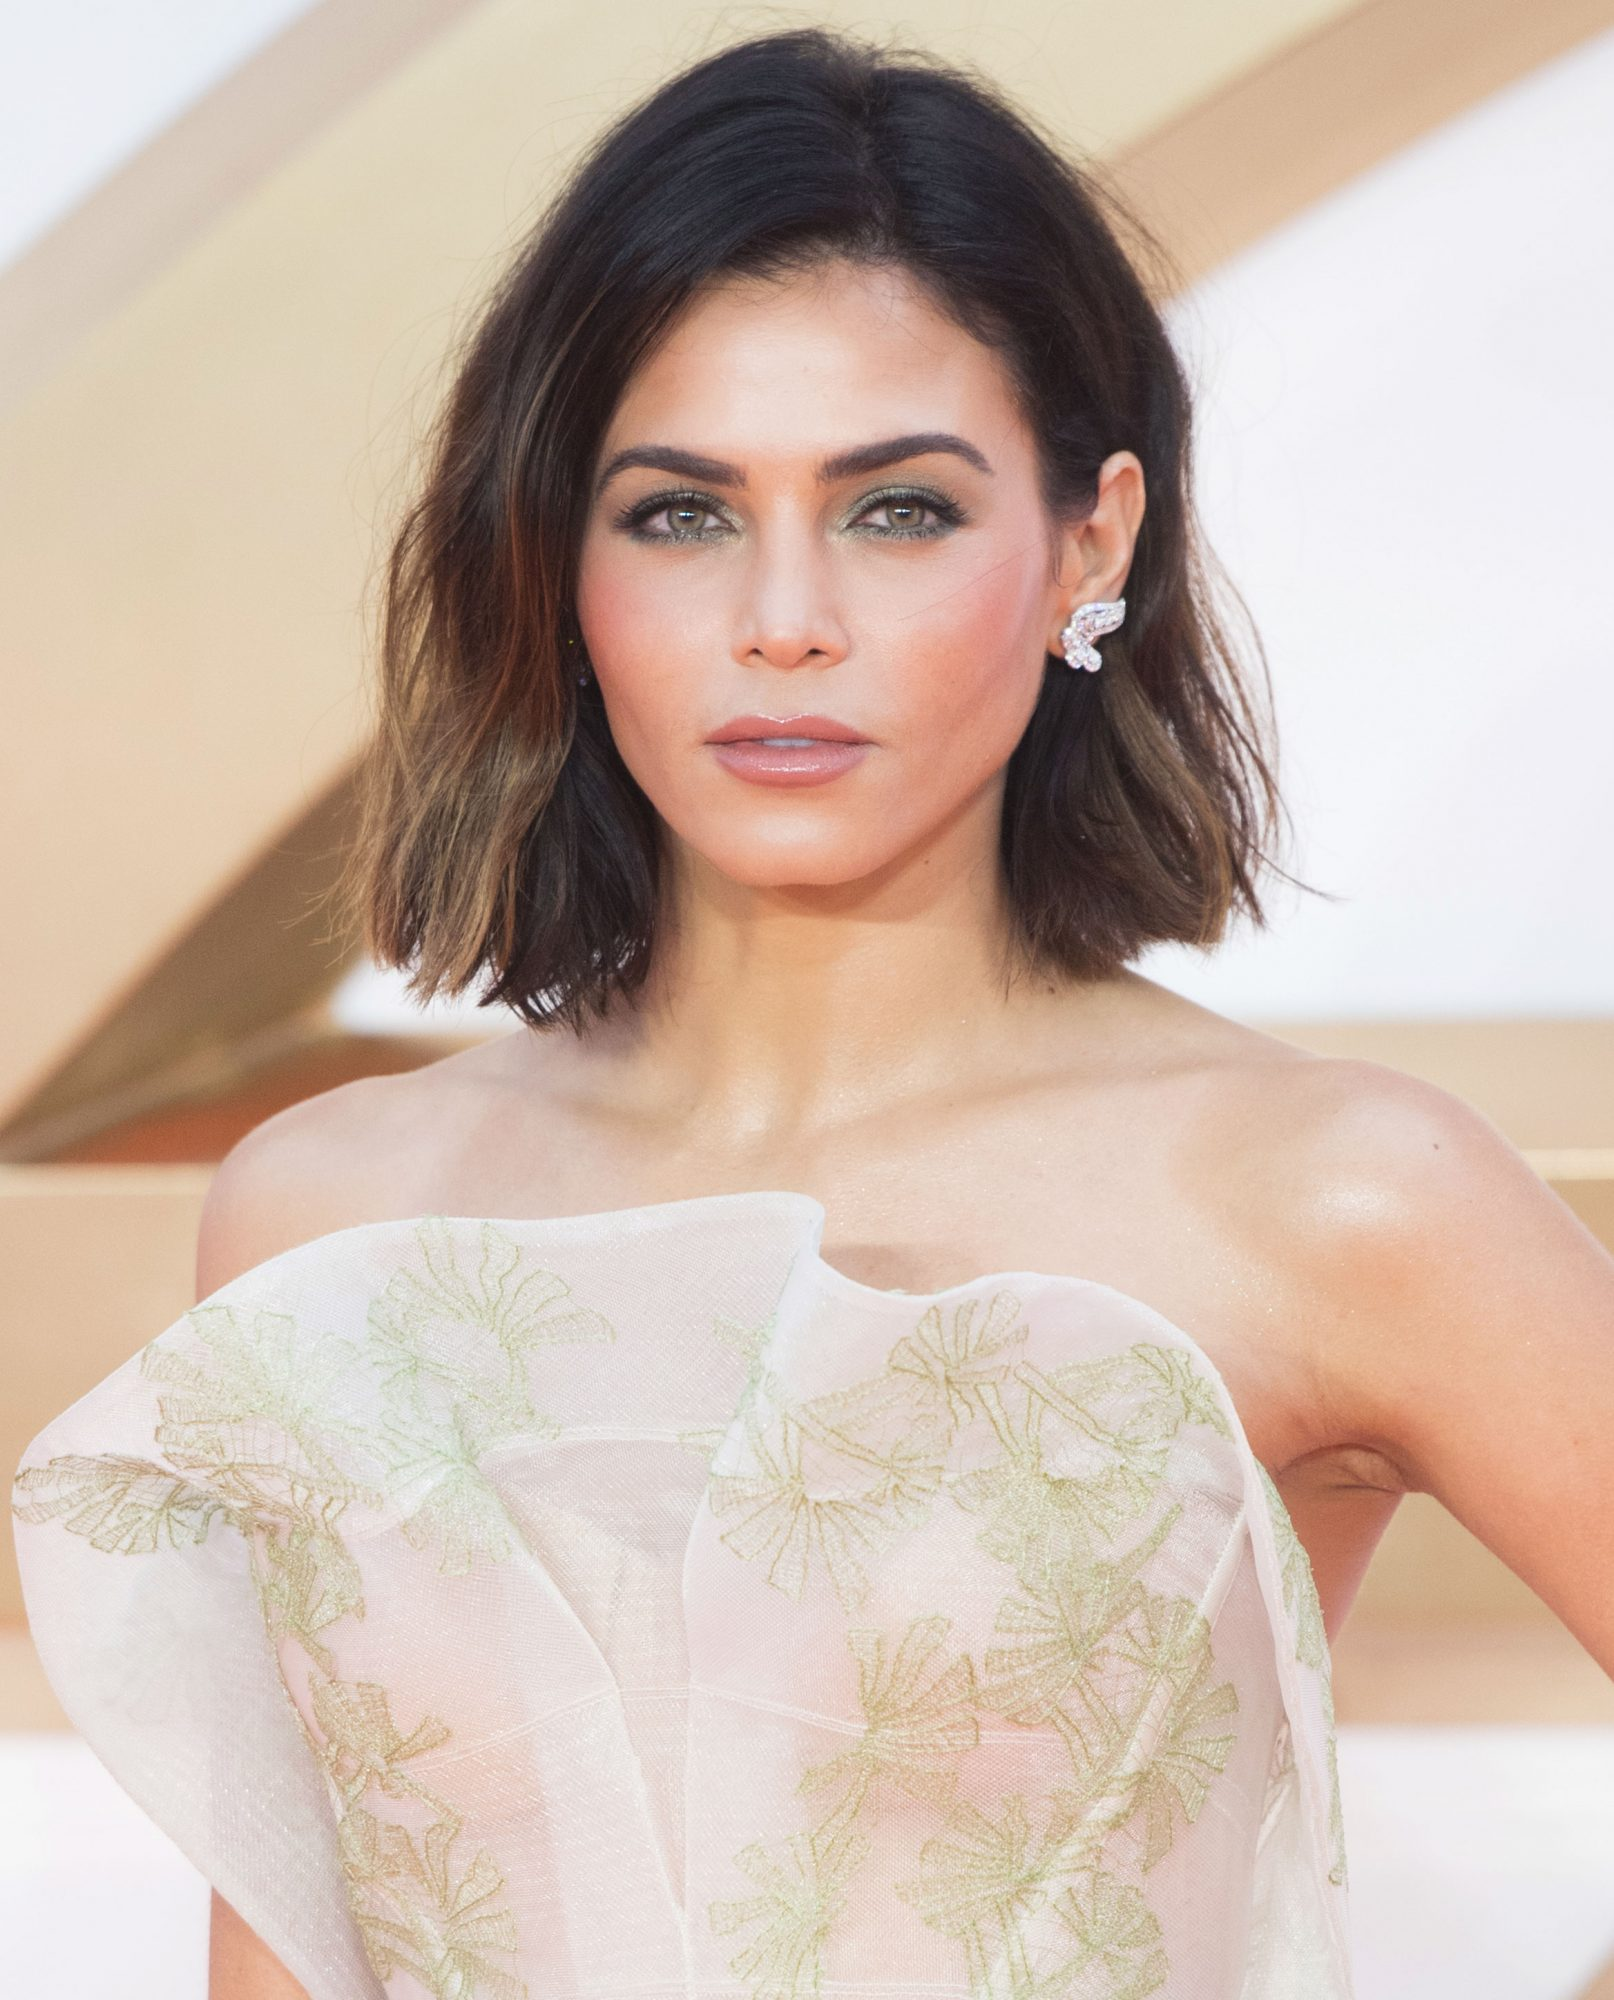 Jenna Dewan Tatum Won't Leave the House Without this Concealer